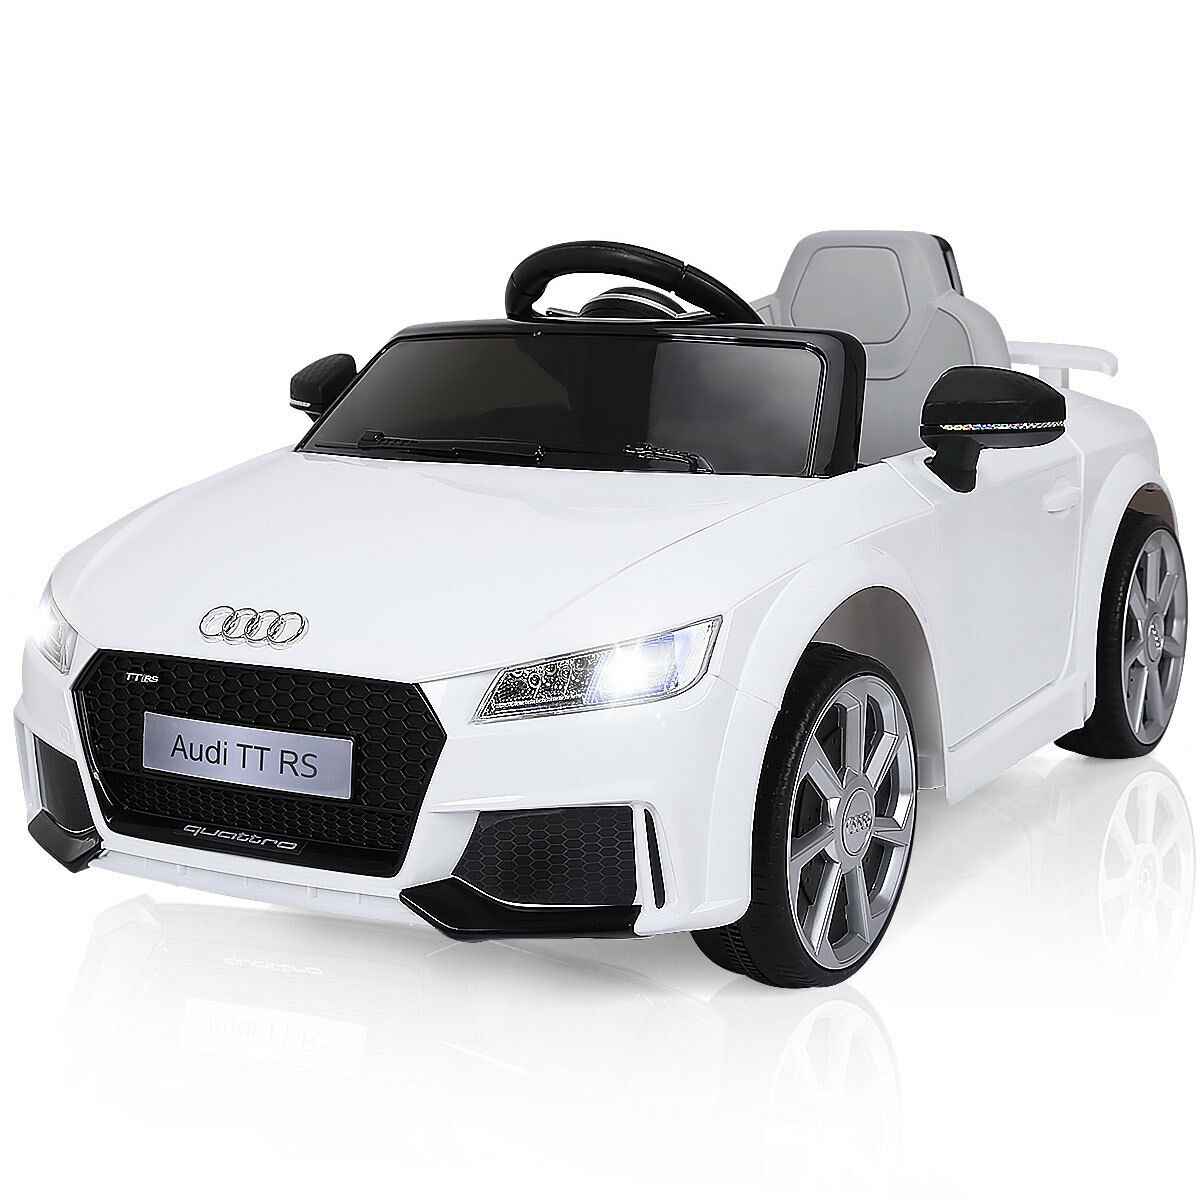 Gymax 12V Audi TT RS Electric Kids Ride On Car Licensed Remote Control MP3